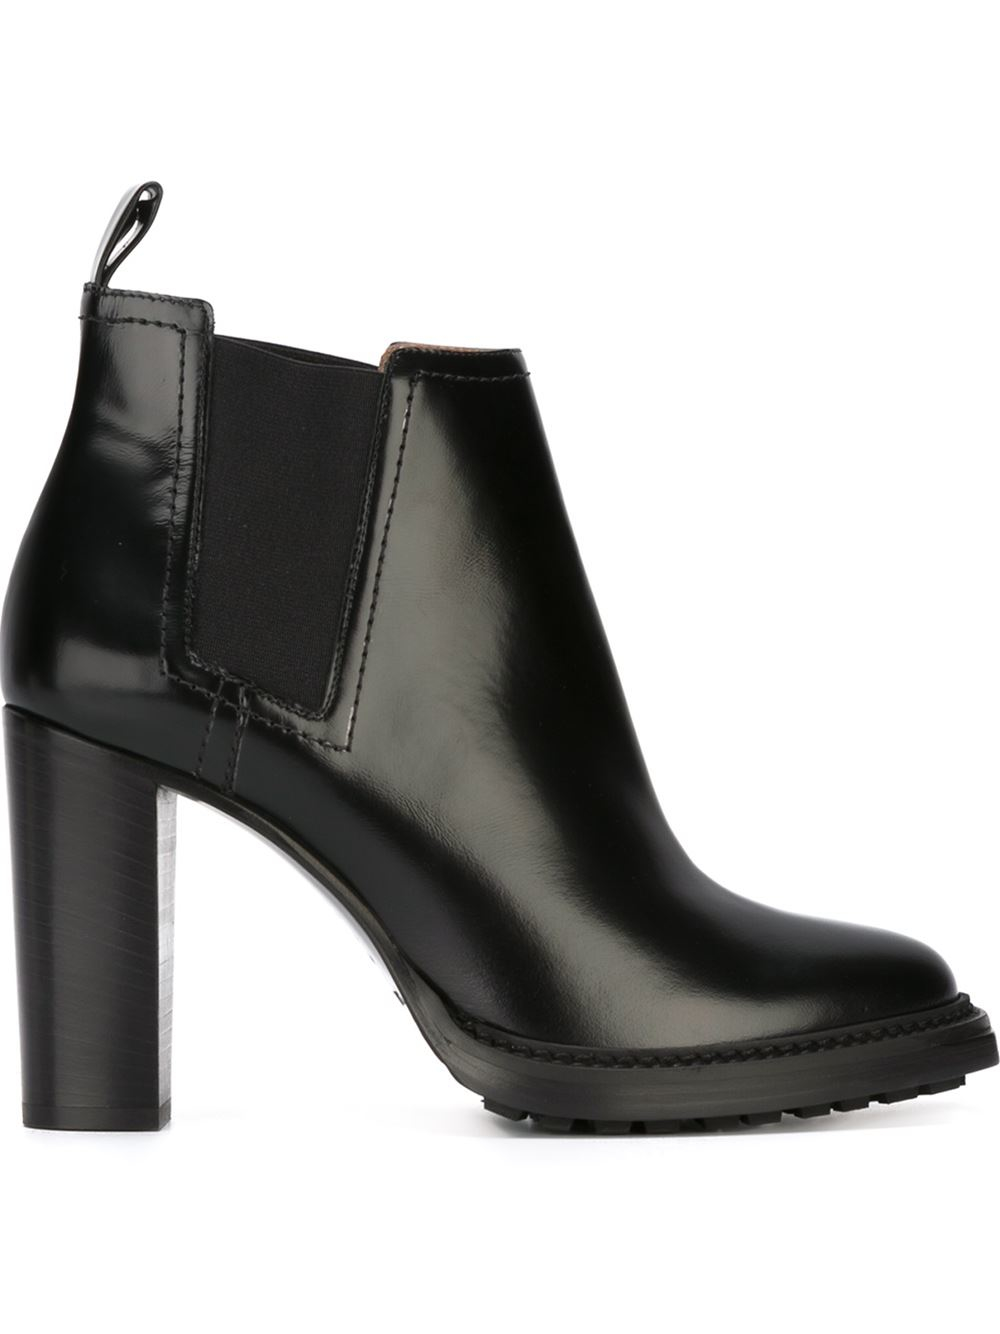 Qupid Ankle Boots Womens Size Brown Zip up chunky High Heel Leather EUC NS1 MY SERVICE: I Provide a Good Shine, Repair and Replace Heels and Soles, Restitch and Repair Uppers and Add Shoe and Heel Lifts and Wedges.